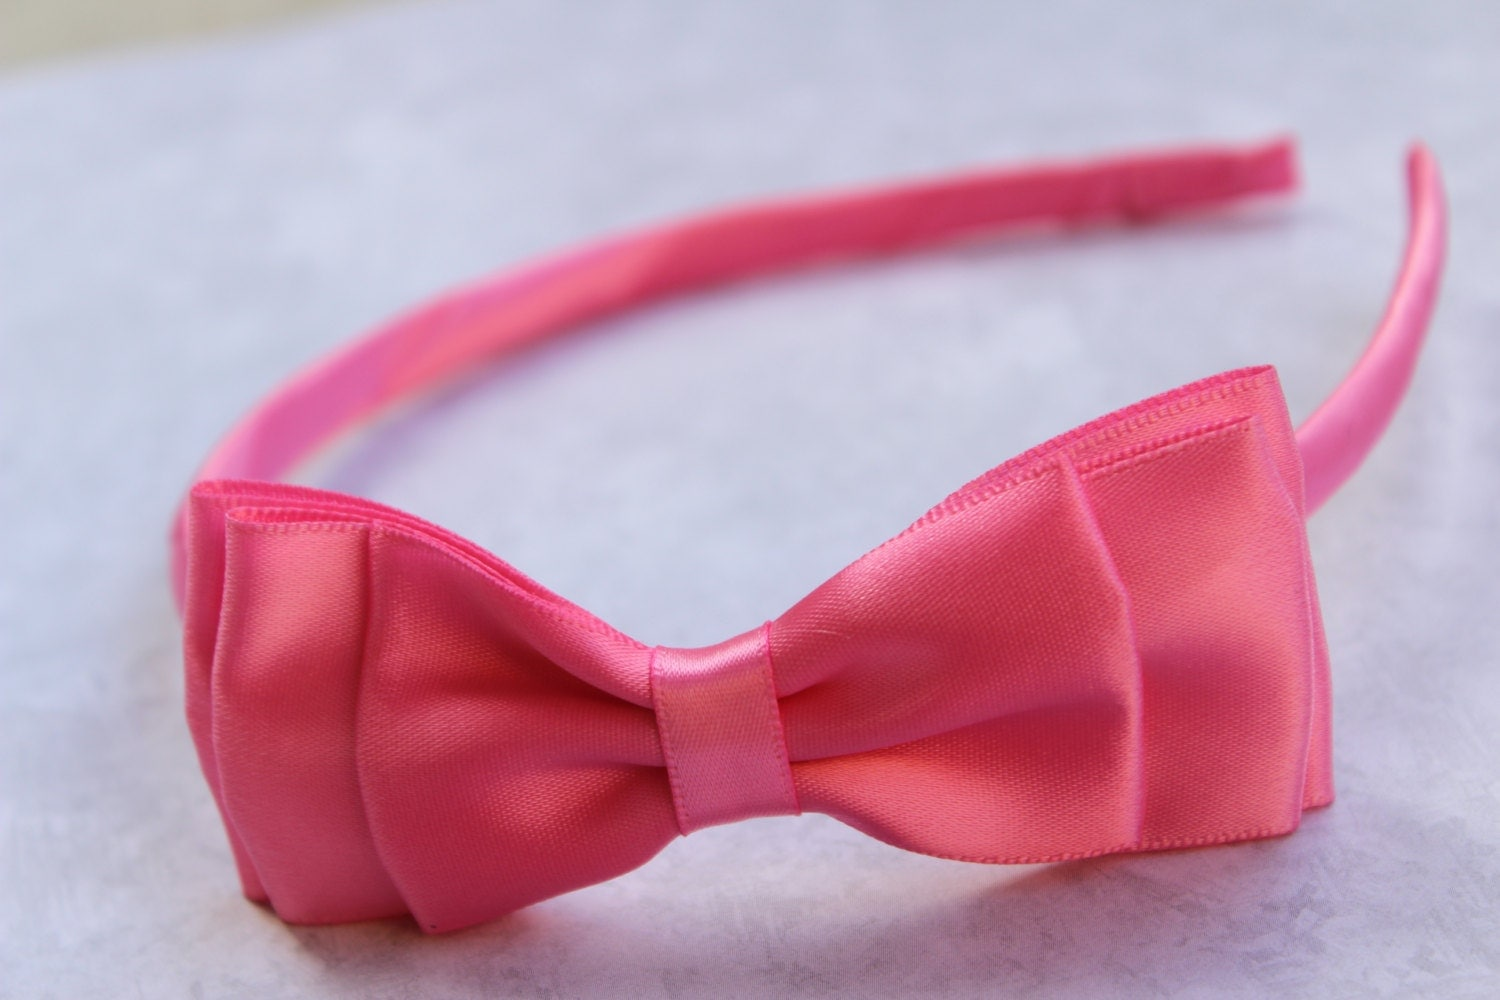 Hair Bow Headbands for Girls are the best gift,12 different colors Baby Girls Headbands 20Pcs